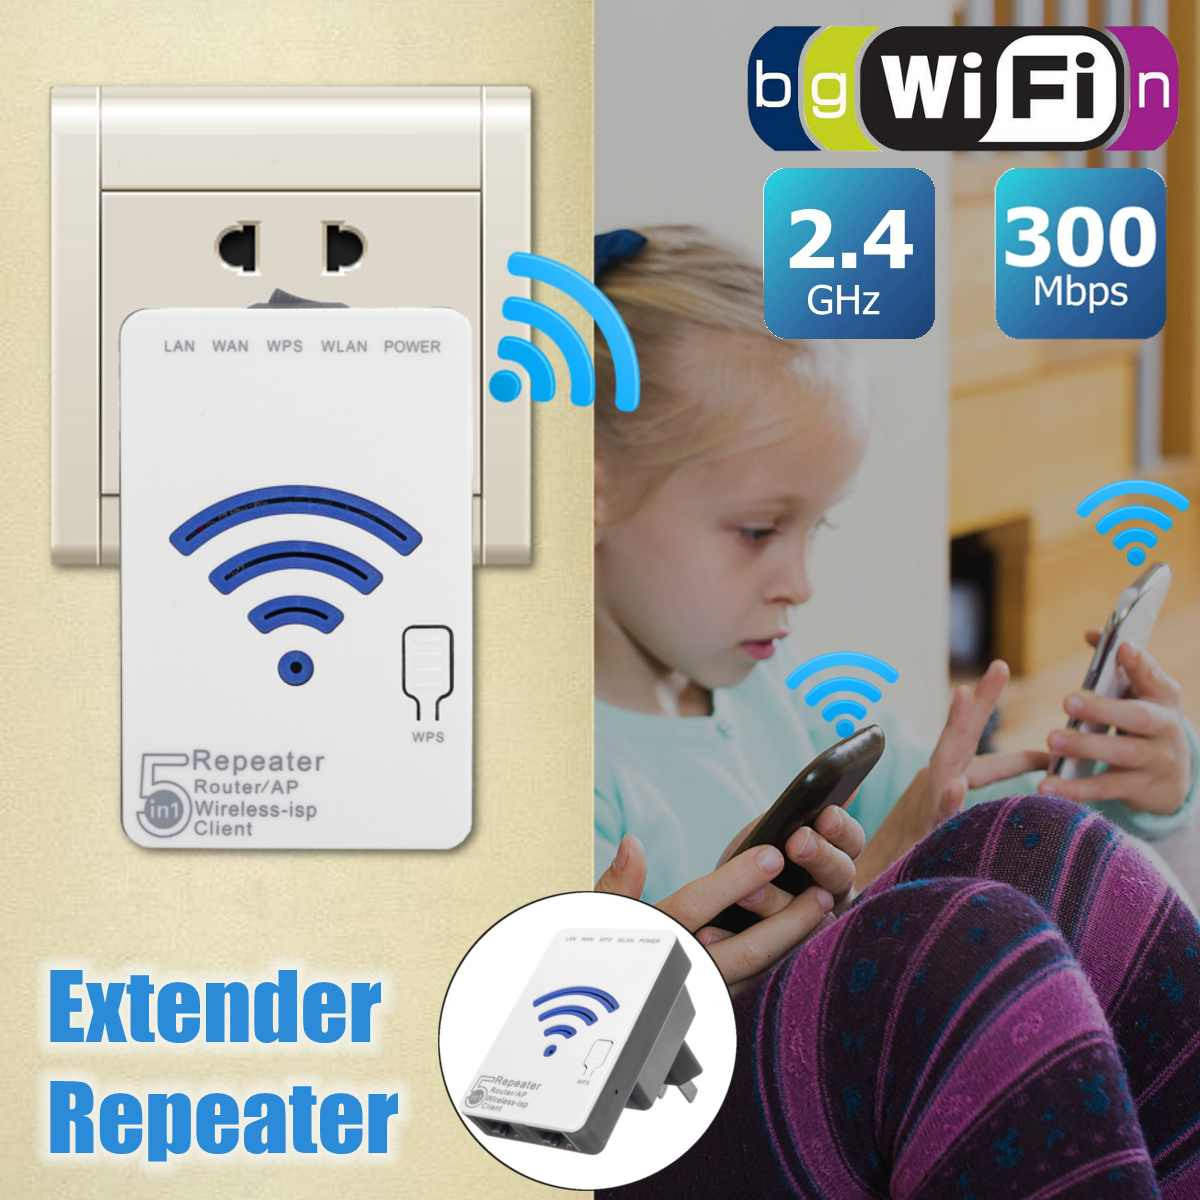 LEORY WLAN 300Mbps Extender Repeater Mini Router  WiFi Signal Booster Extender Amplifier for Travel Office Home